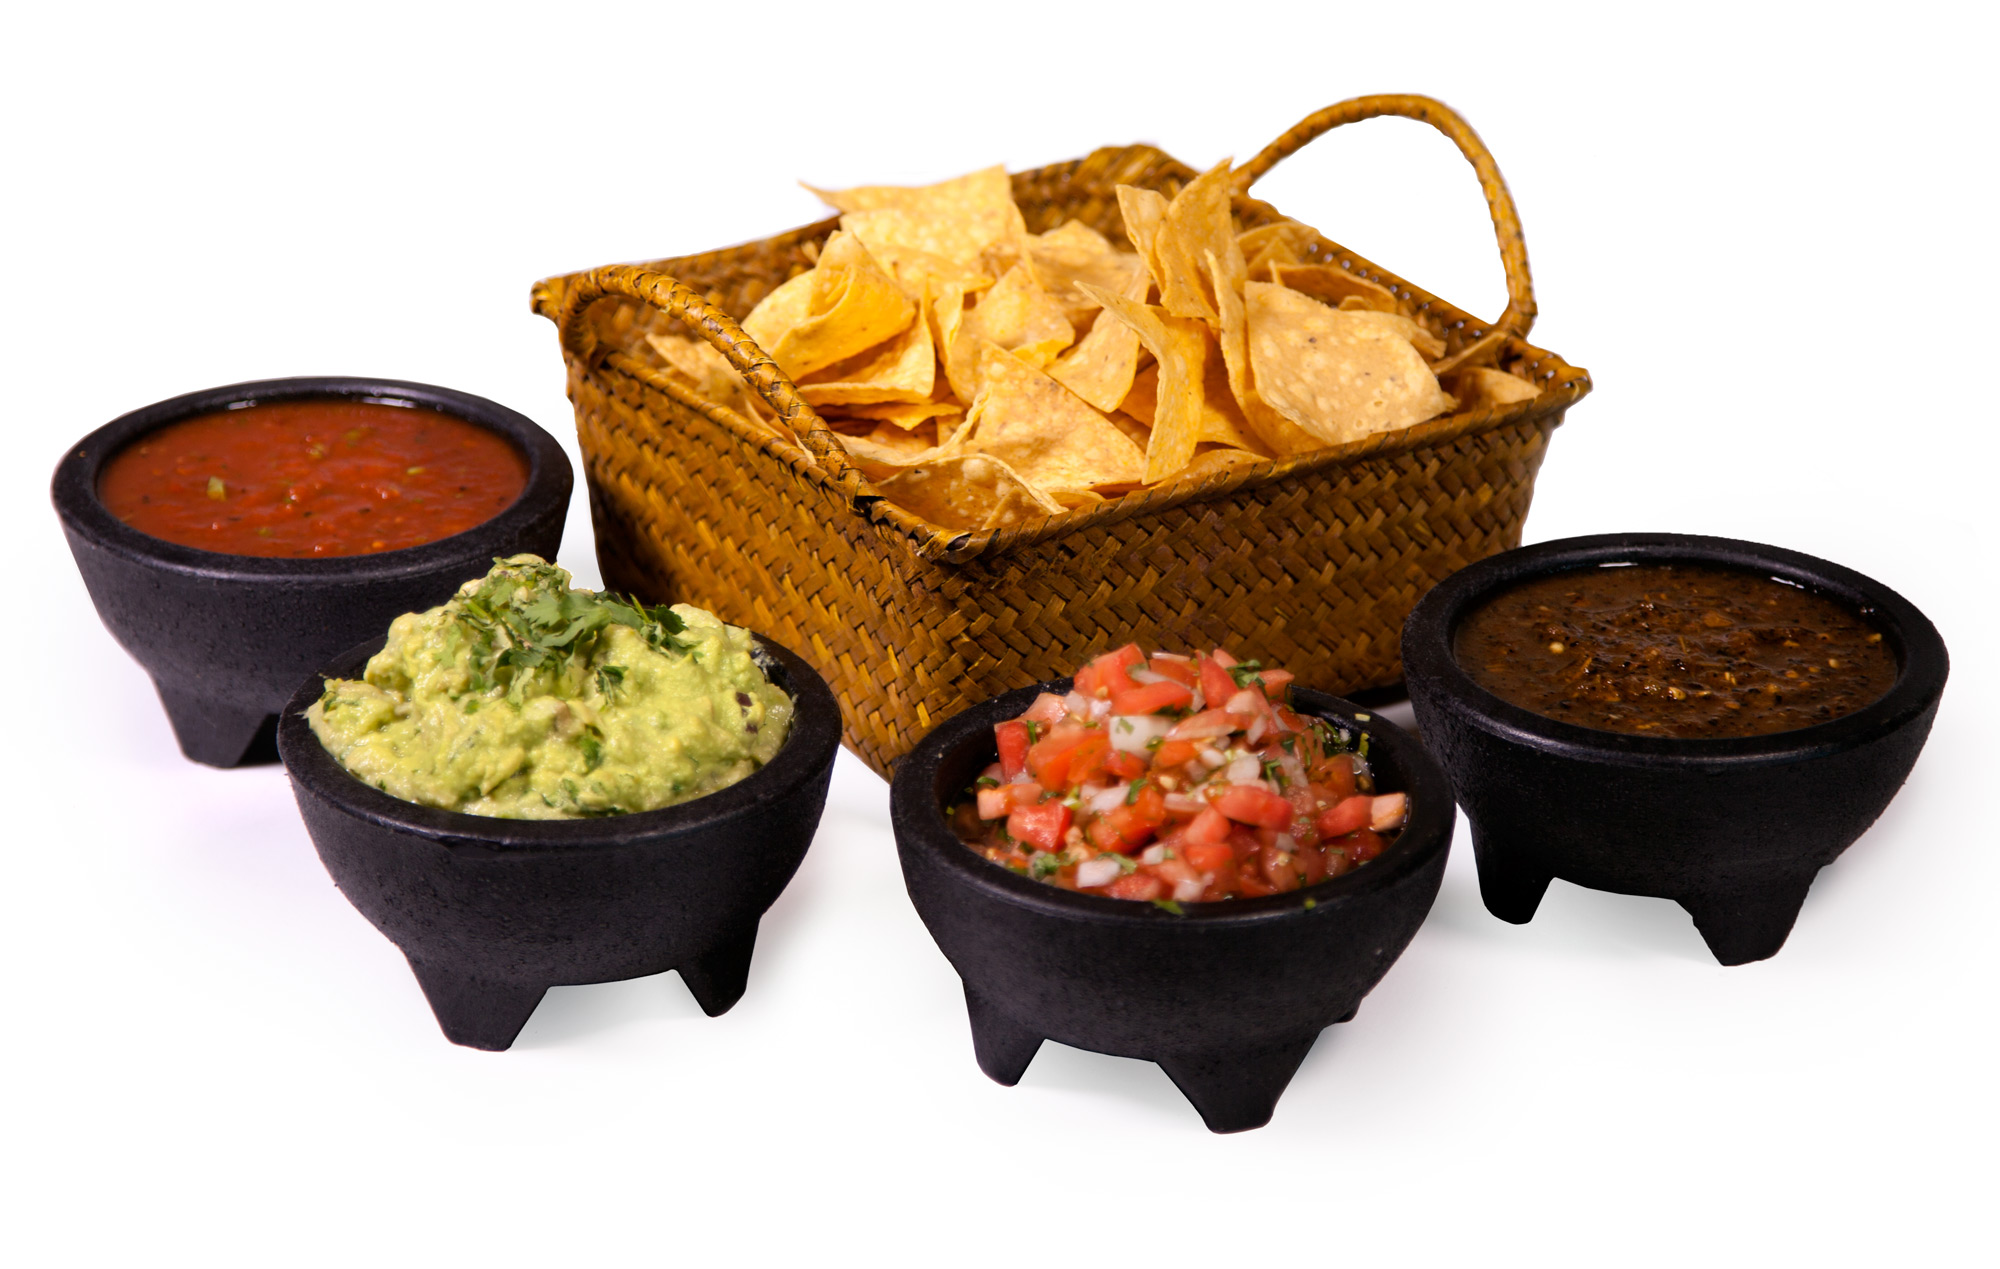 catering_salsa_chips_1.jpg